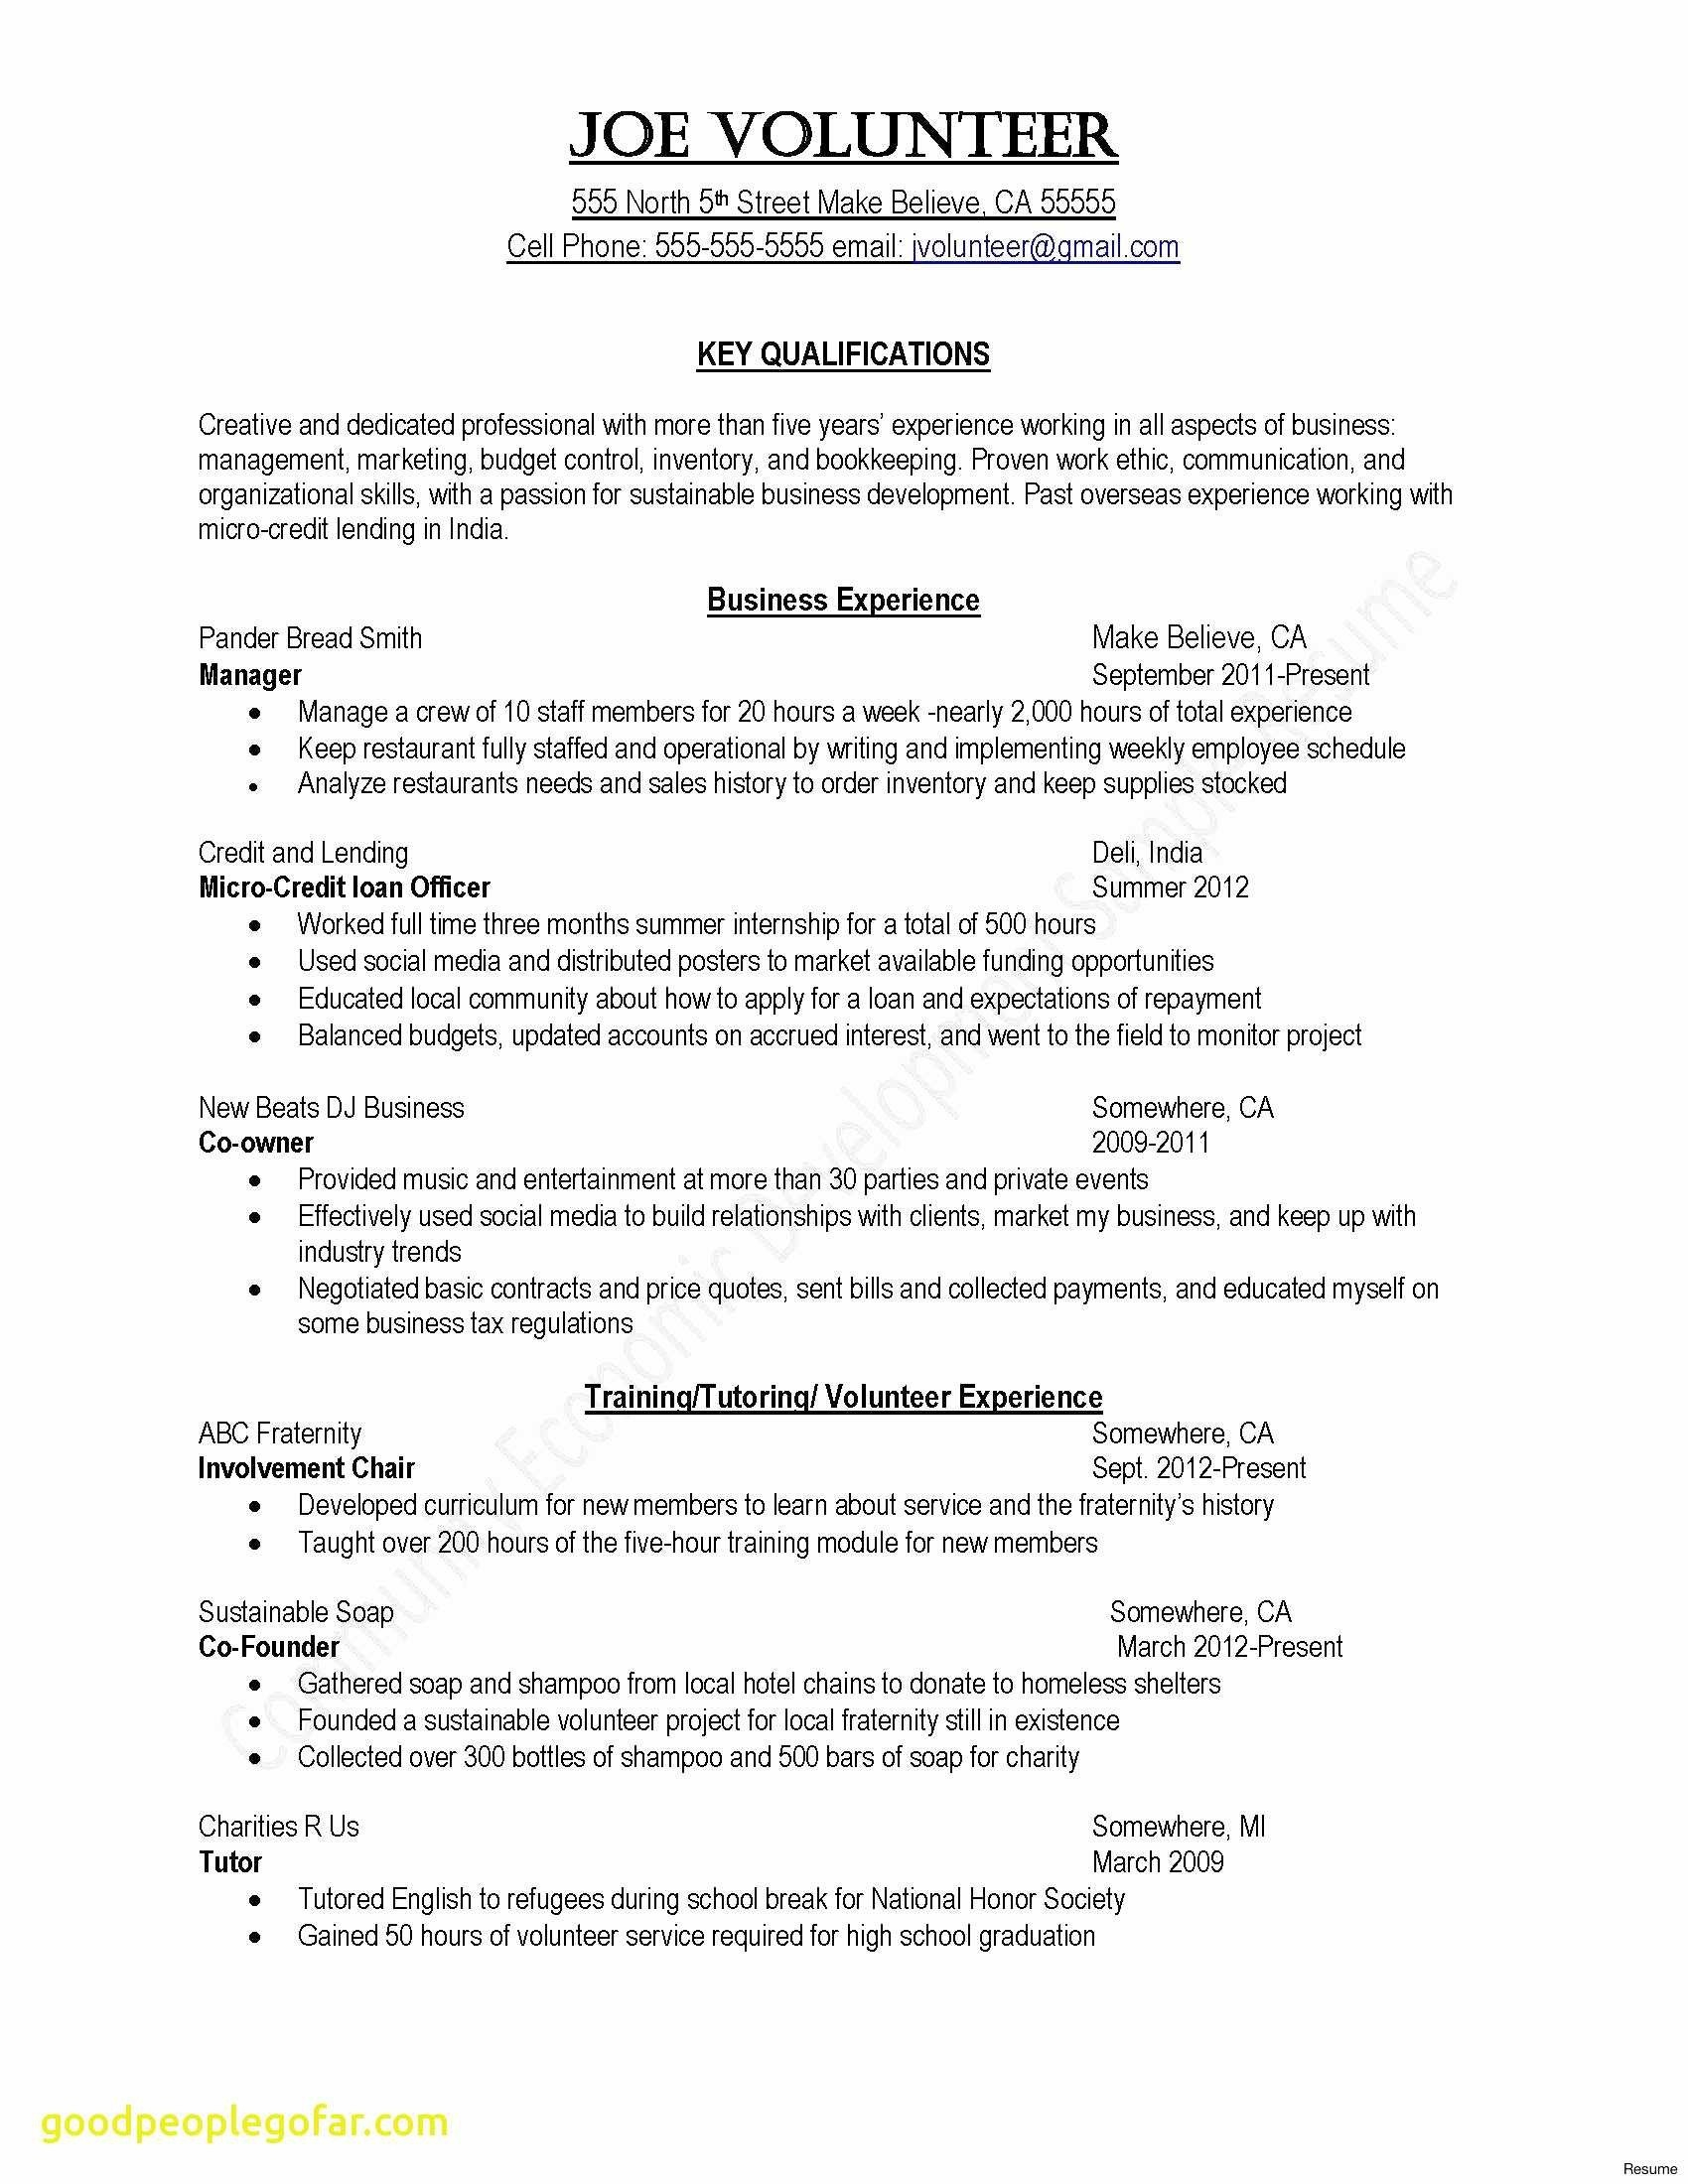 Resume Introduction Examples - Letter Introduction Template Collection